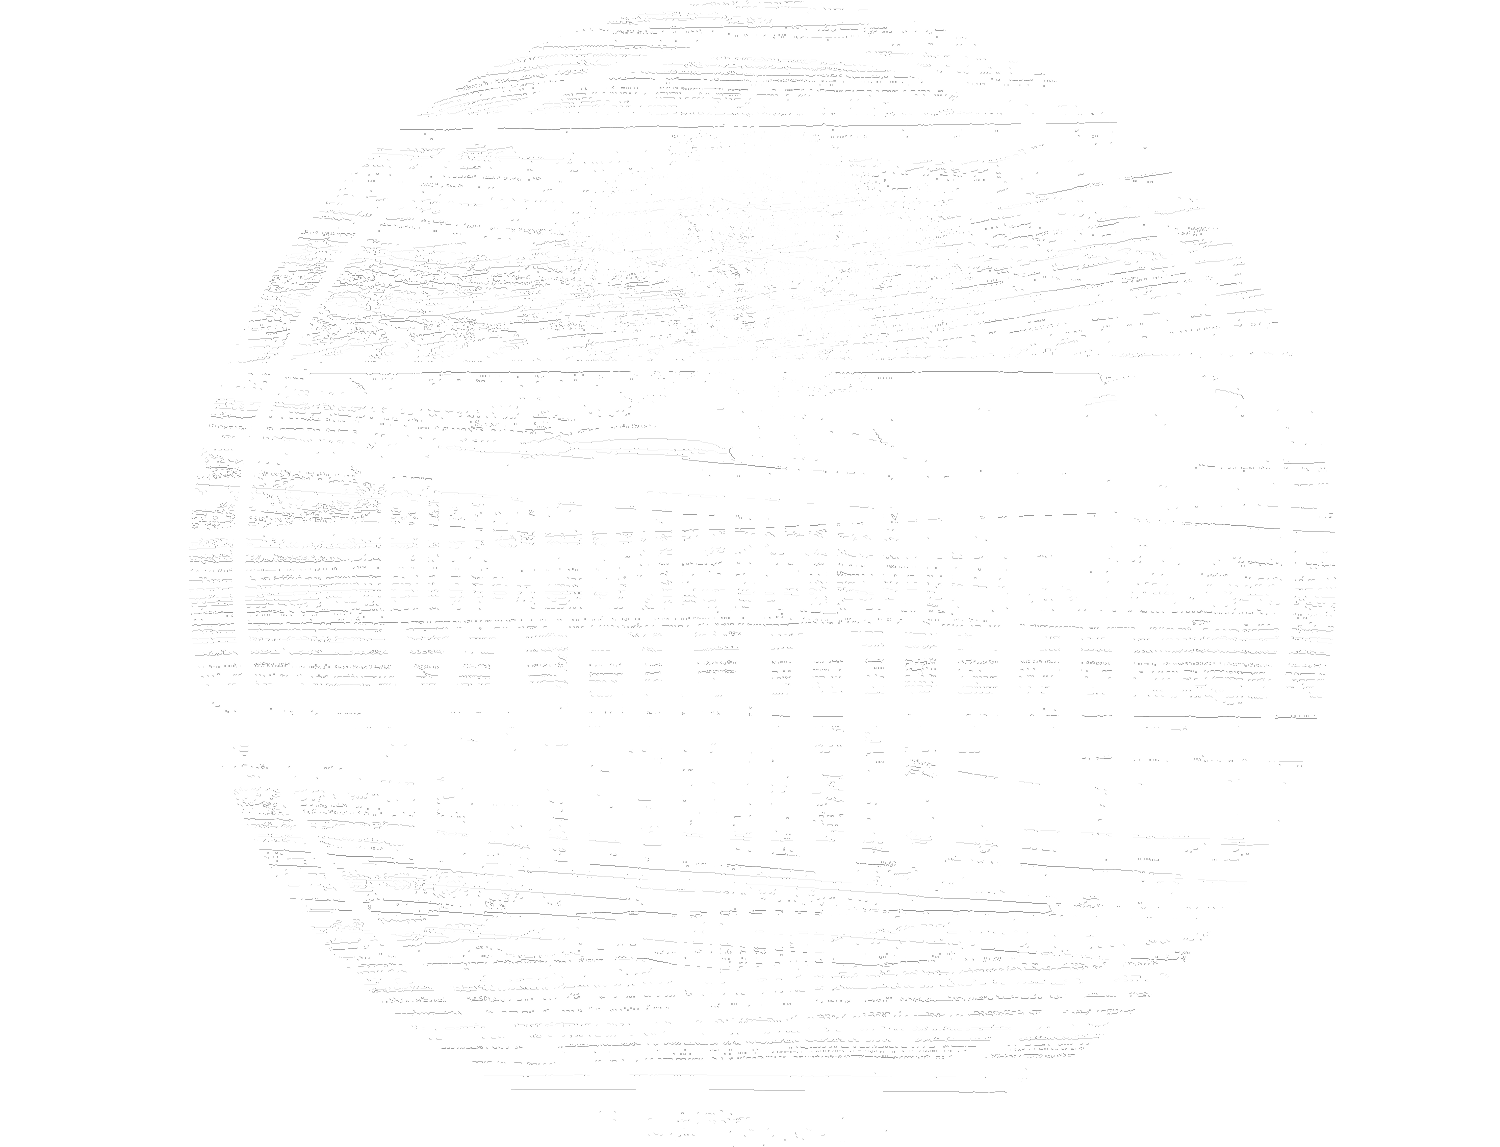 First Baptist Church of Yarmouth, Maine